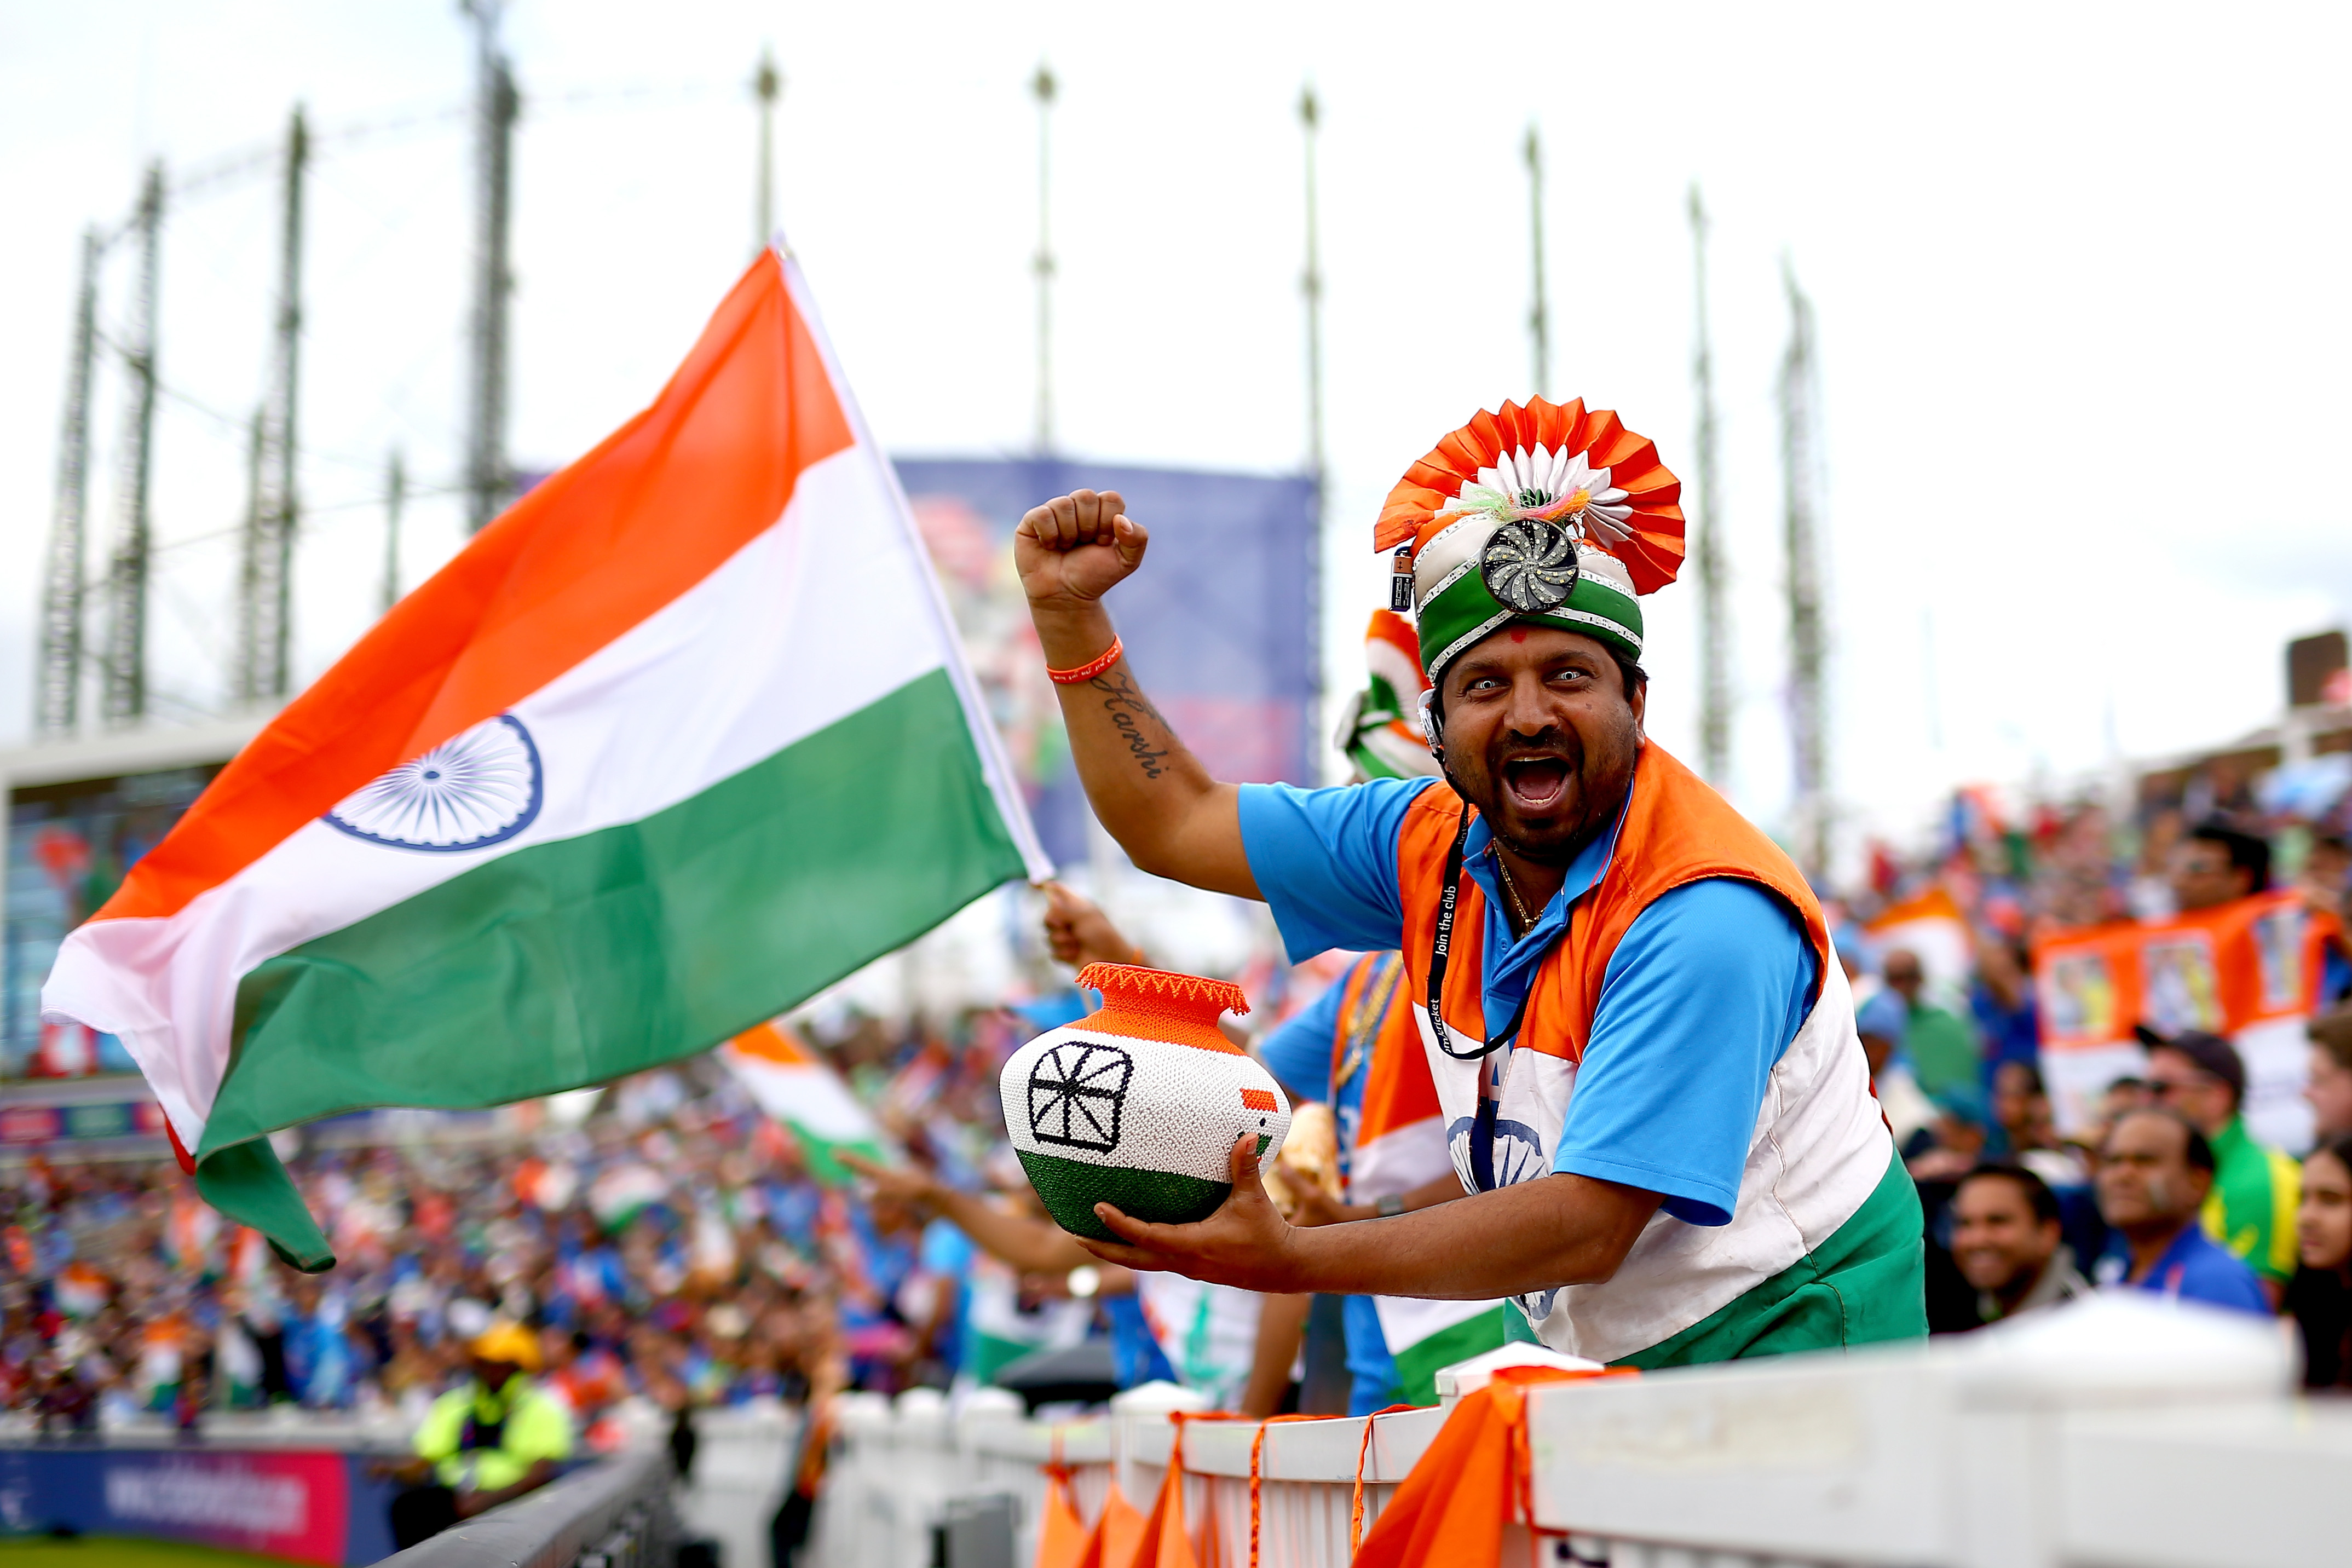 LONDON, ENGLAND - JUNE 09: India fans enjoy the atmosphere during the Group Stage match of the ICC Cricket World Cup 2019 between India and Australia at The Oval on June 09, 2019 in London, England. (Photo by Jordan Mansfield/Getty Images for Surrey CCC)